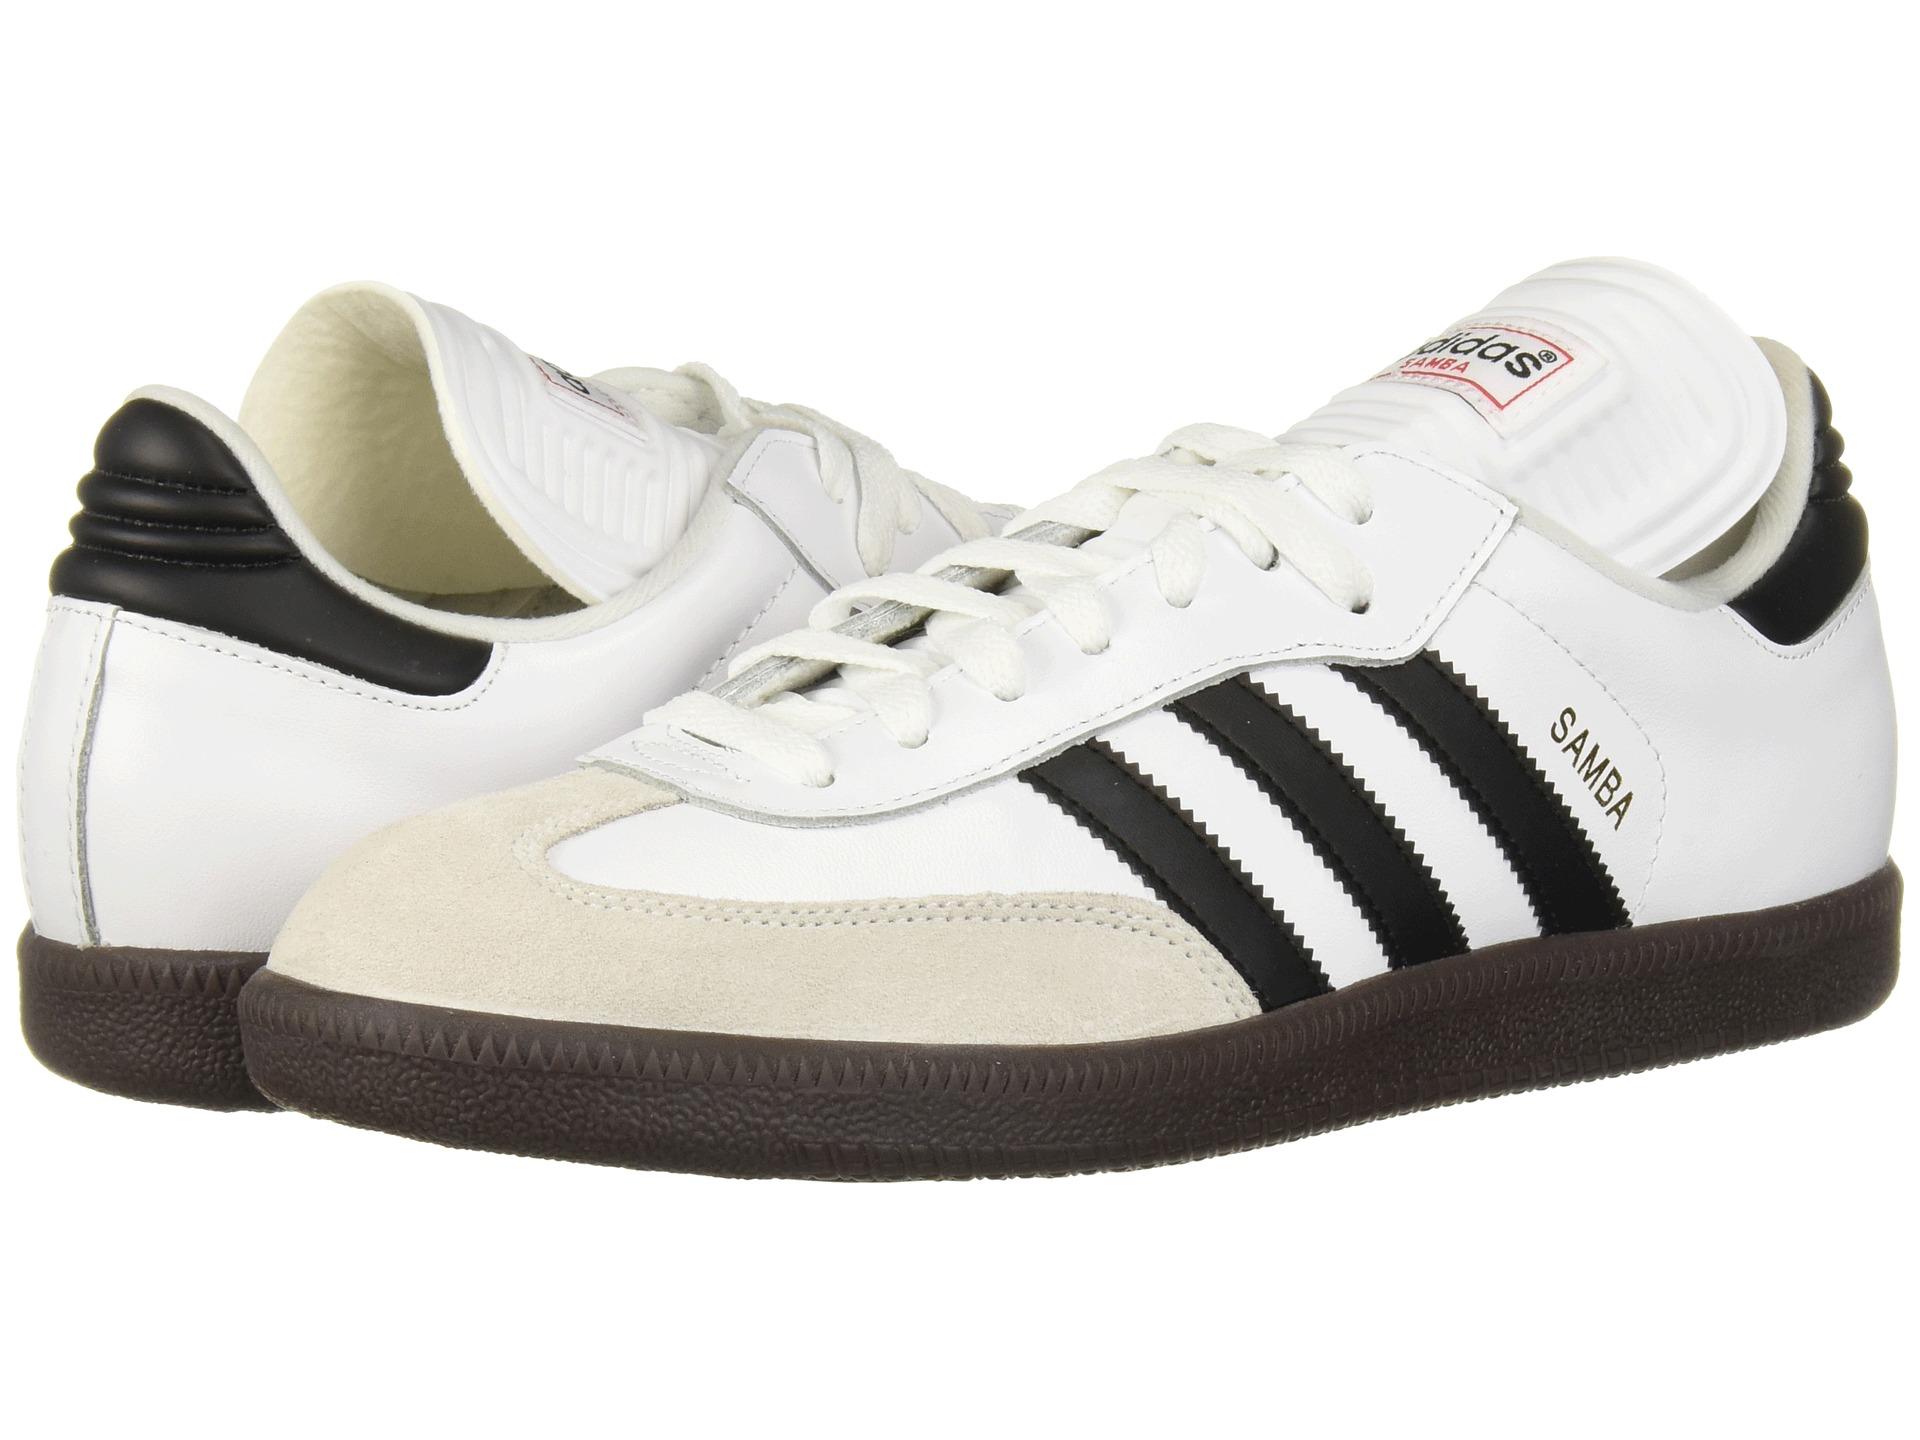 adidas samba shoes white sneaker